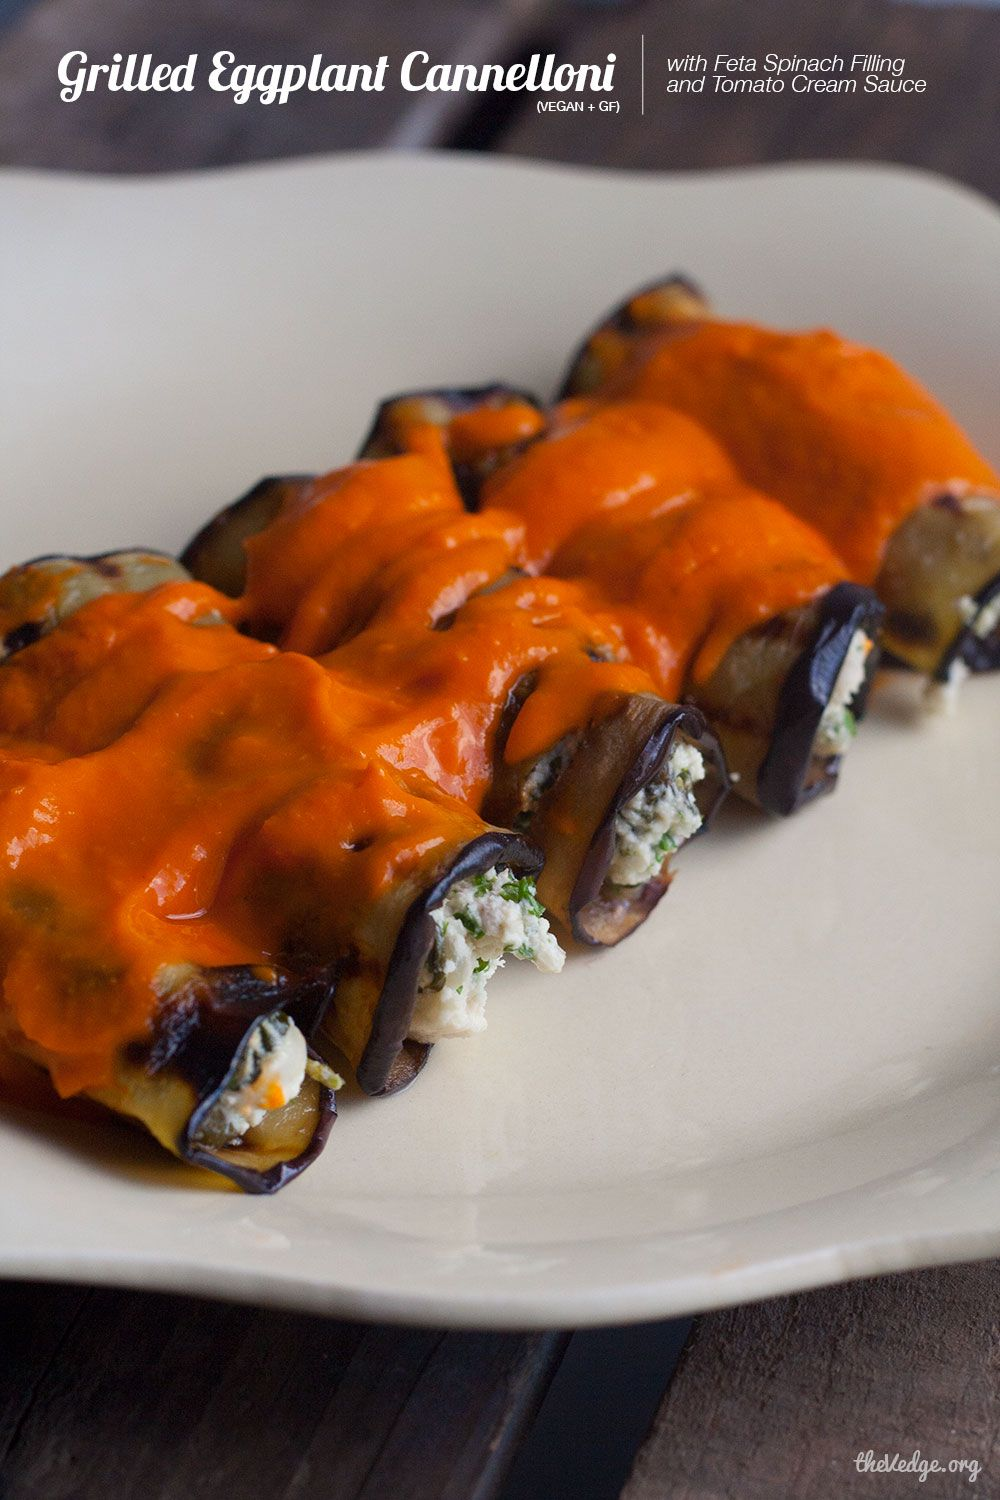 Grilled Eggplant Cannelloni with Feta Spinach Filling and Tomato Cream Sauce (Vegan + GF)